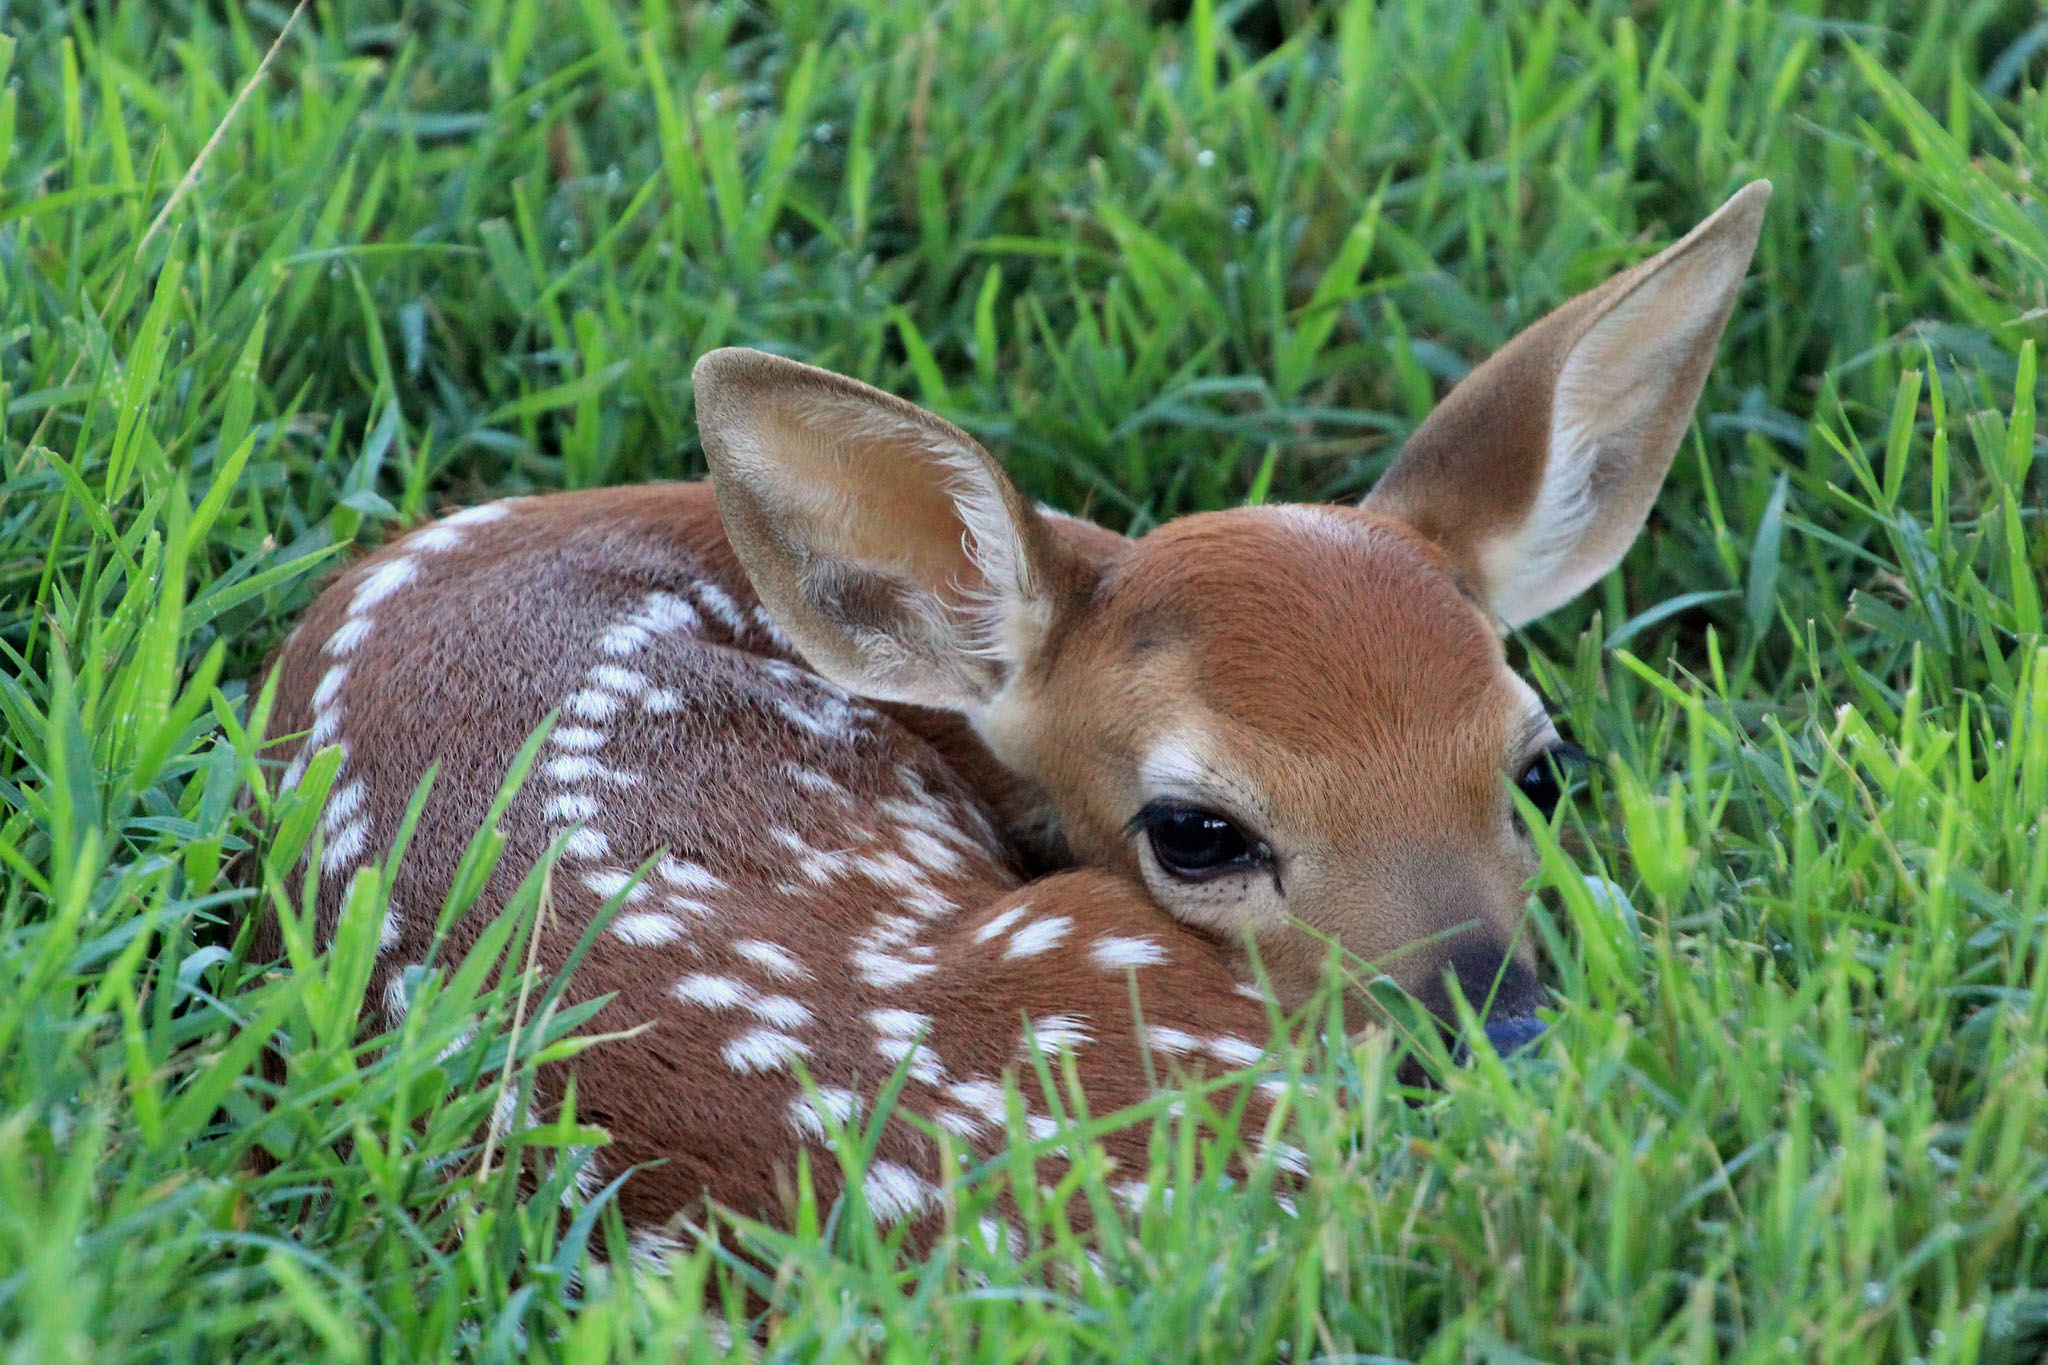 Press Release 7/2/2019 – Wildlife Watch: Fawns - City of Alamosa